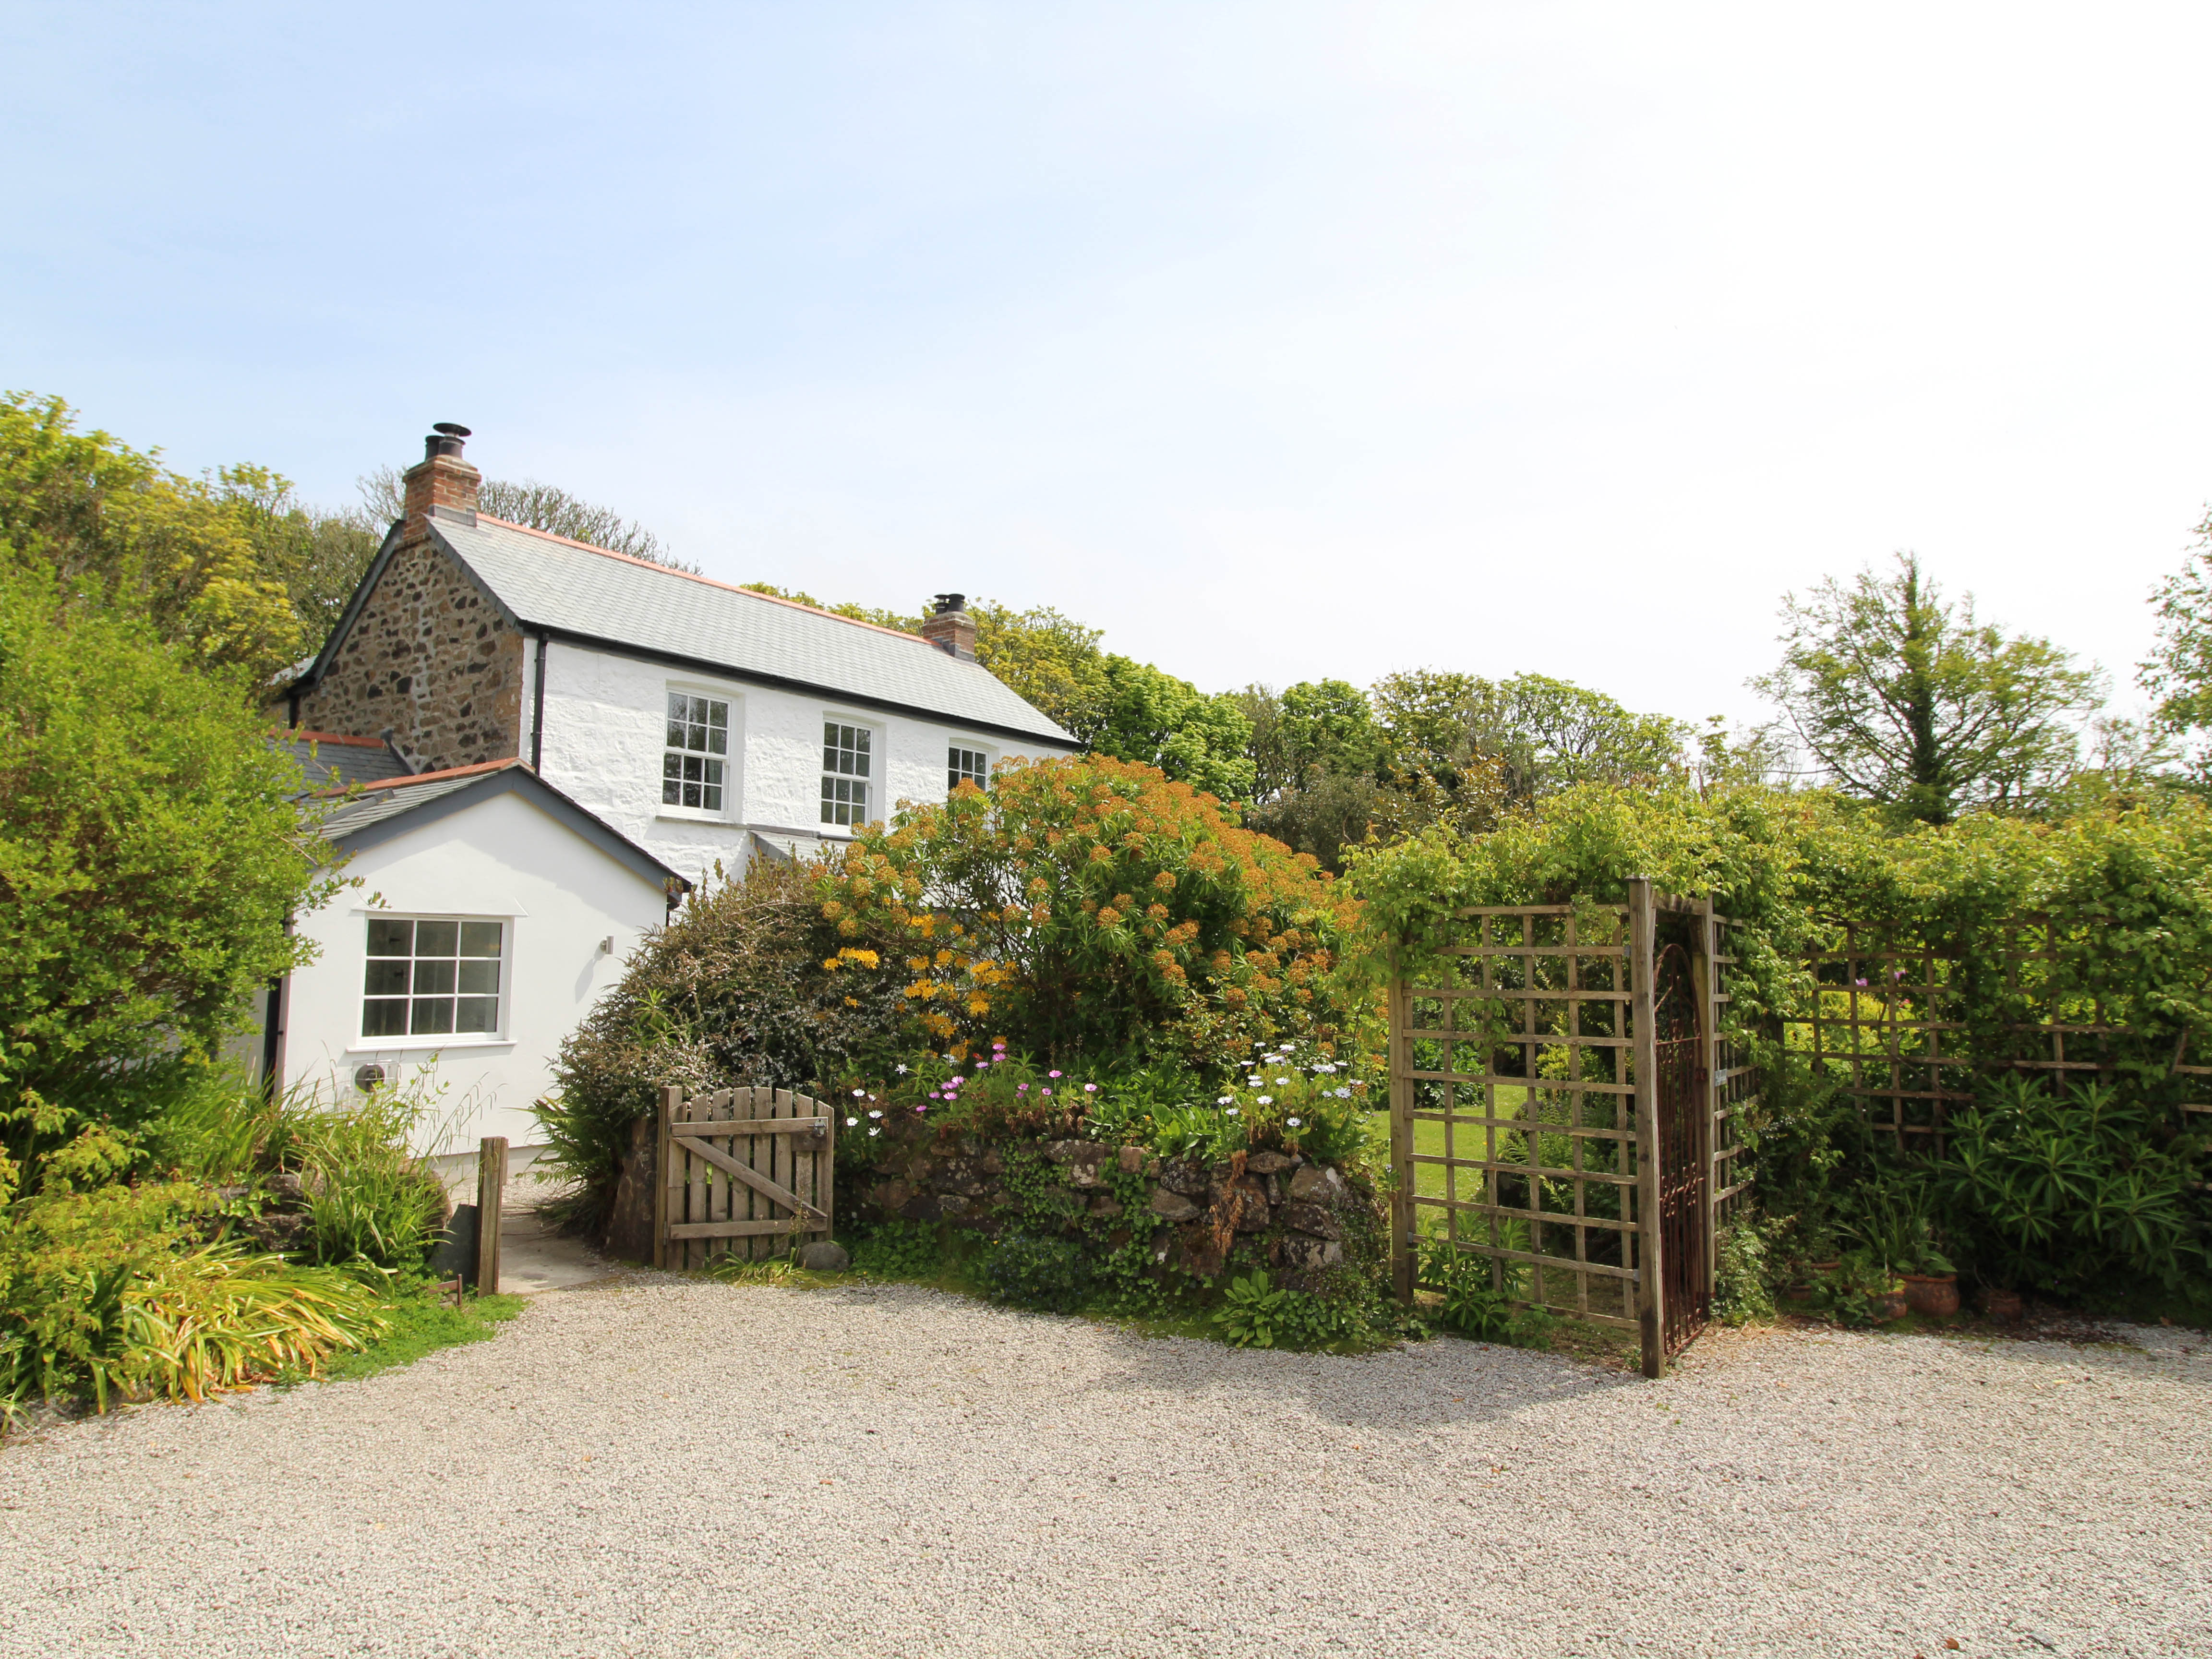 The Farmhouse, St Keverne, Cornwall